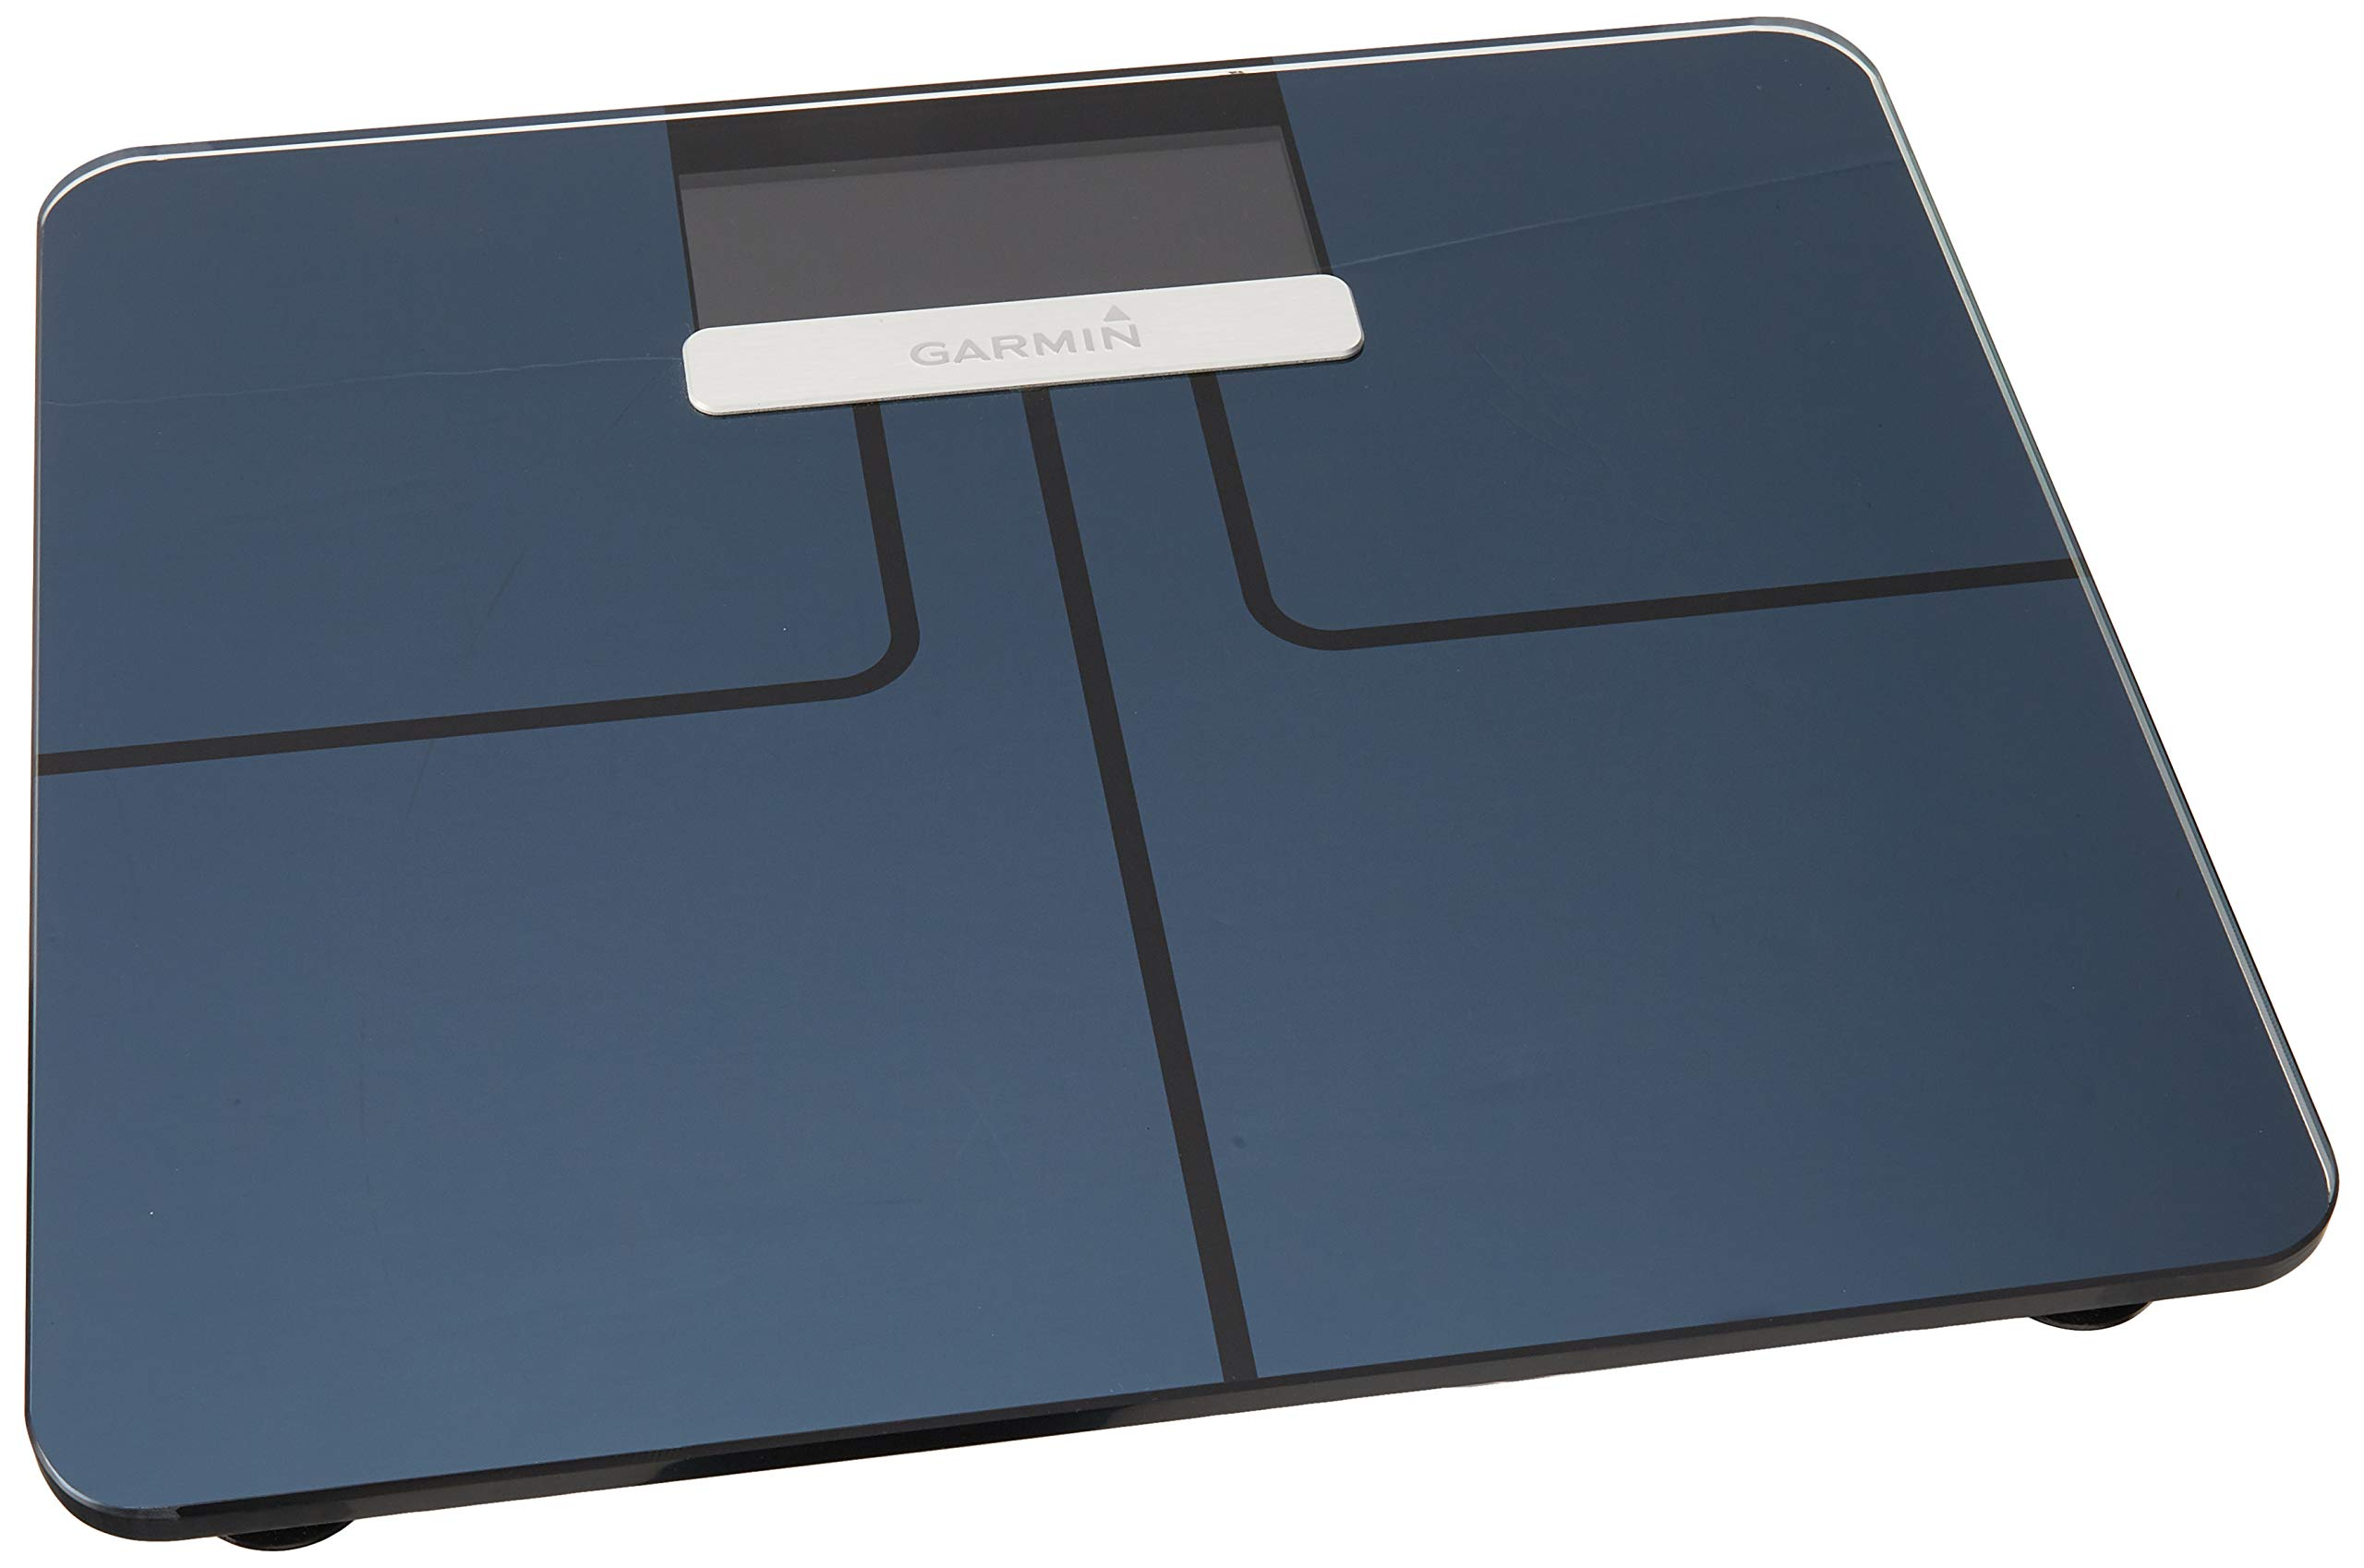 Garmin Index Smart Scale, Wi-Fi Digital Scale, Recognizes Up to 16 Users, Up to 9 Months of Battery Life, Black by Garmin